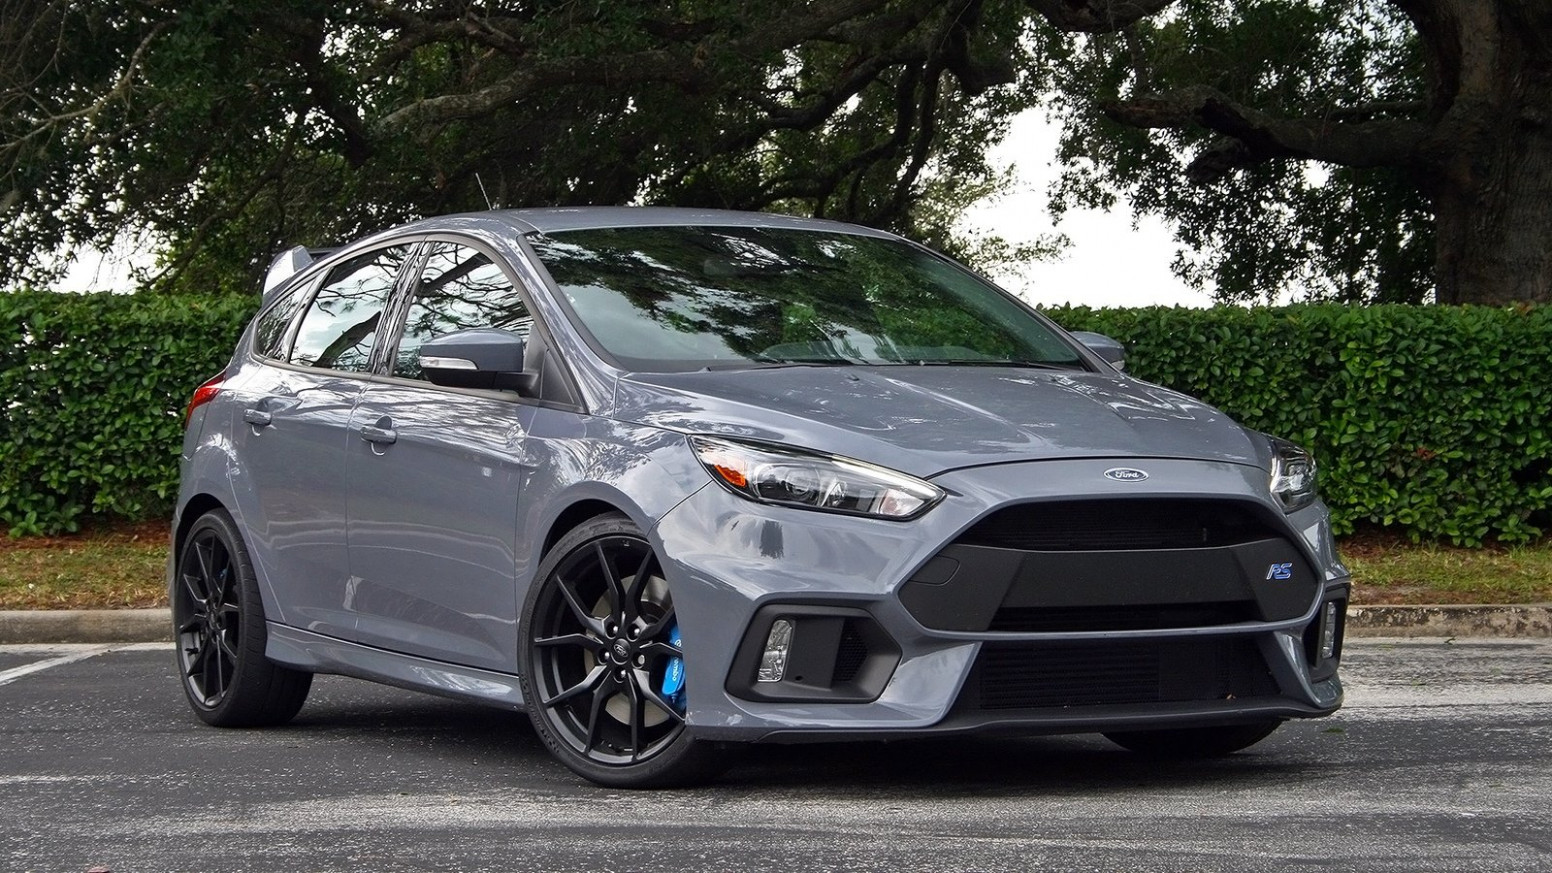 Redesign and Review Ford Focus St 2022